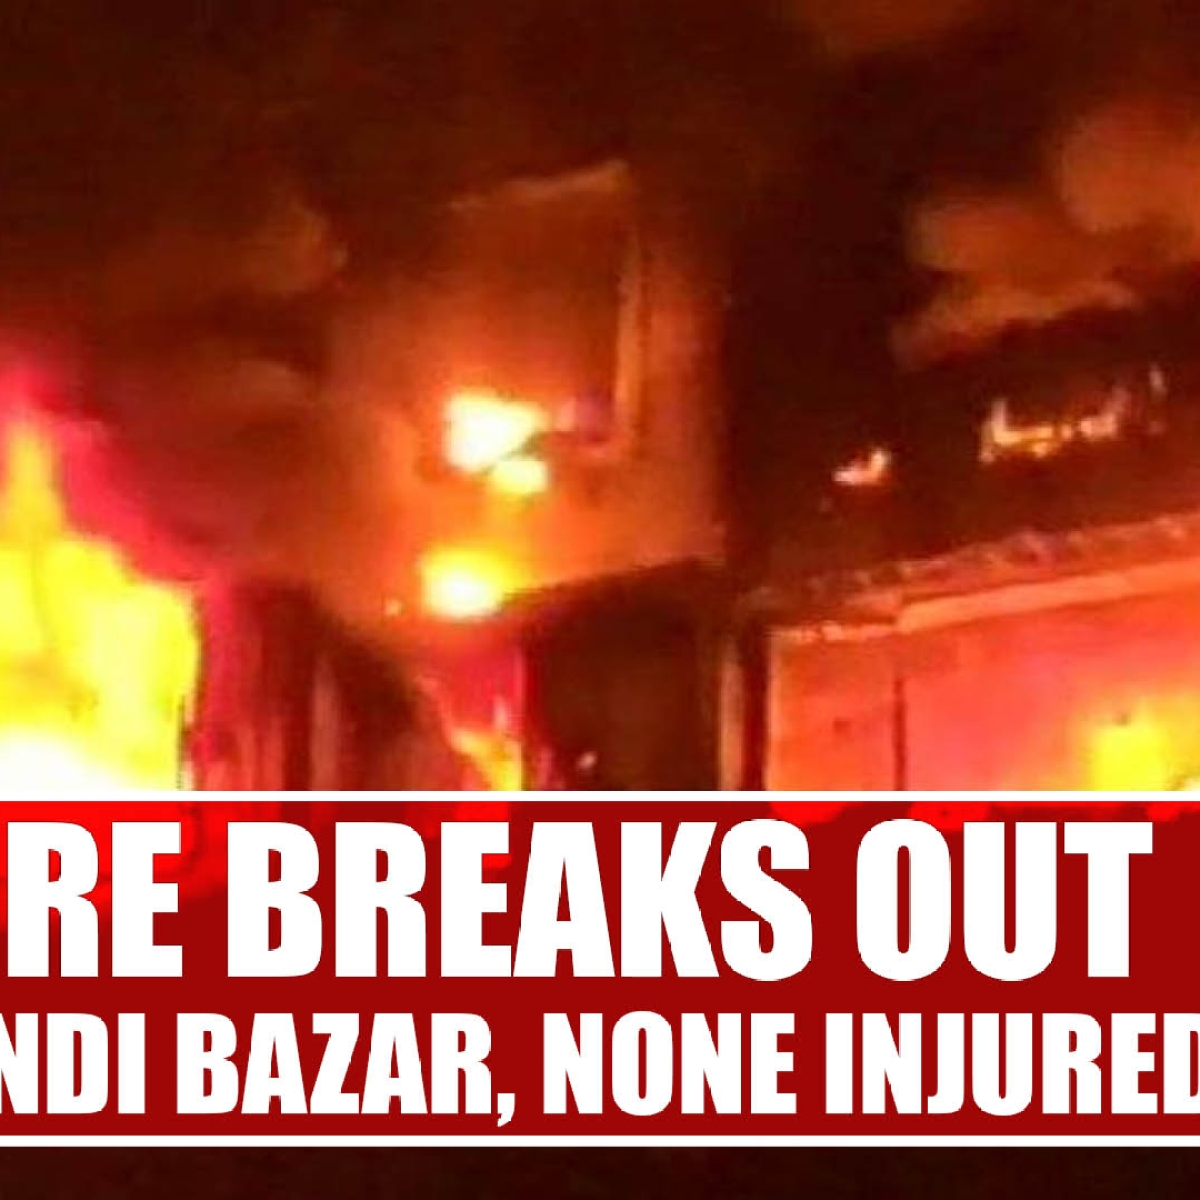 Mumbai: Fire Breaks Out At Bhendi Bazar, None Injured